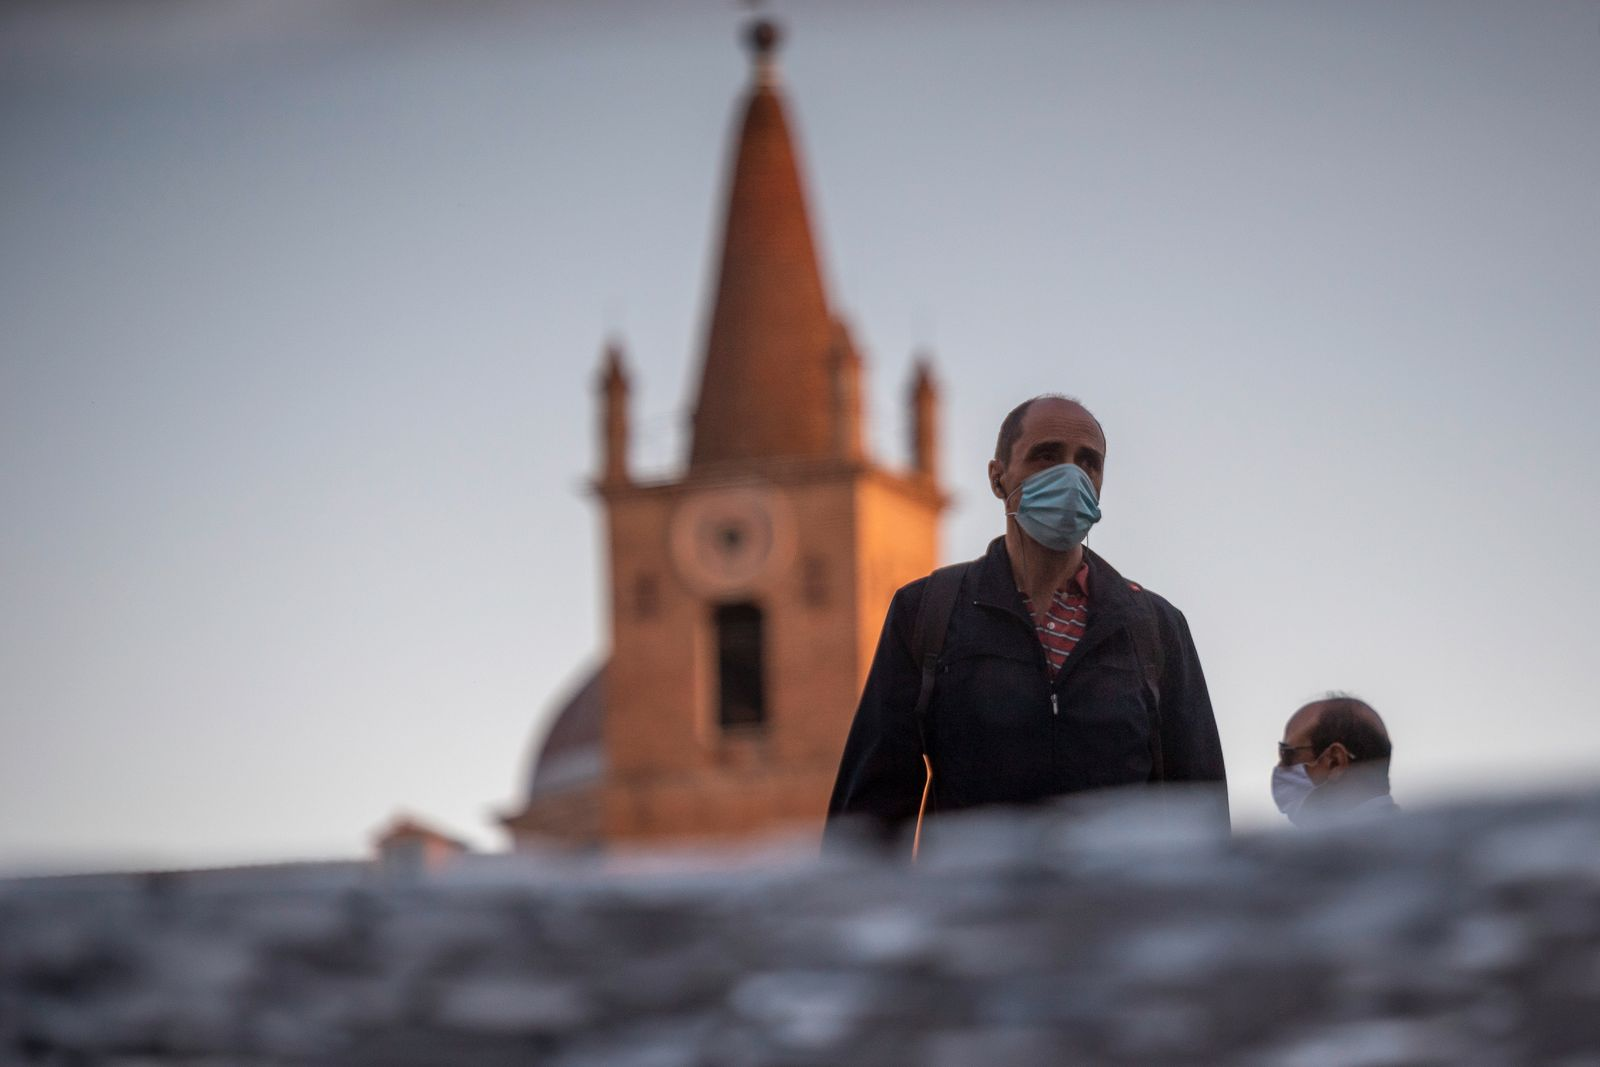 Daily Life In Rome Amid Covid-19 Pandemic